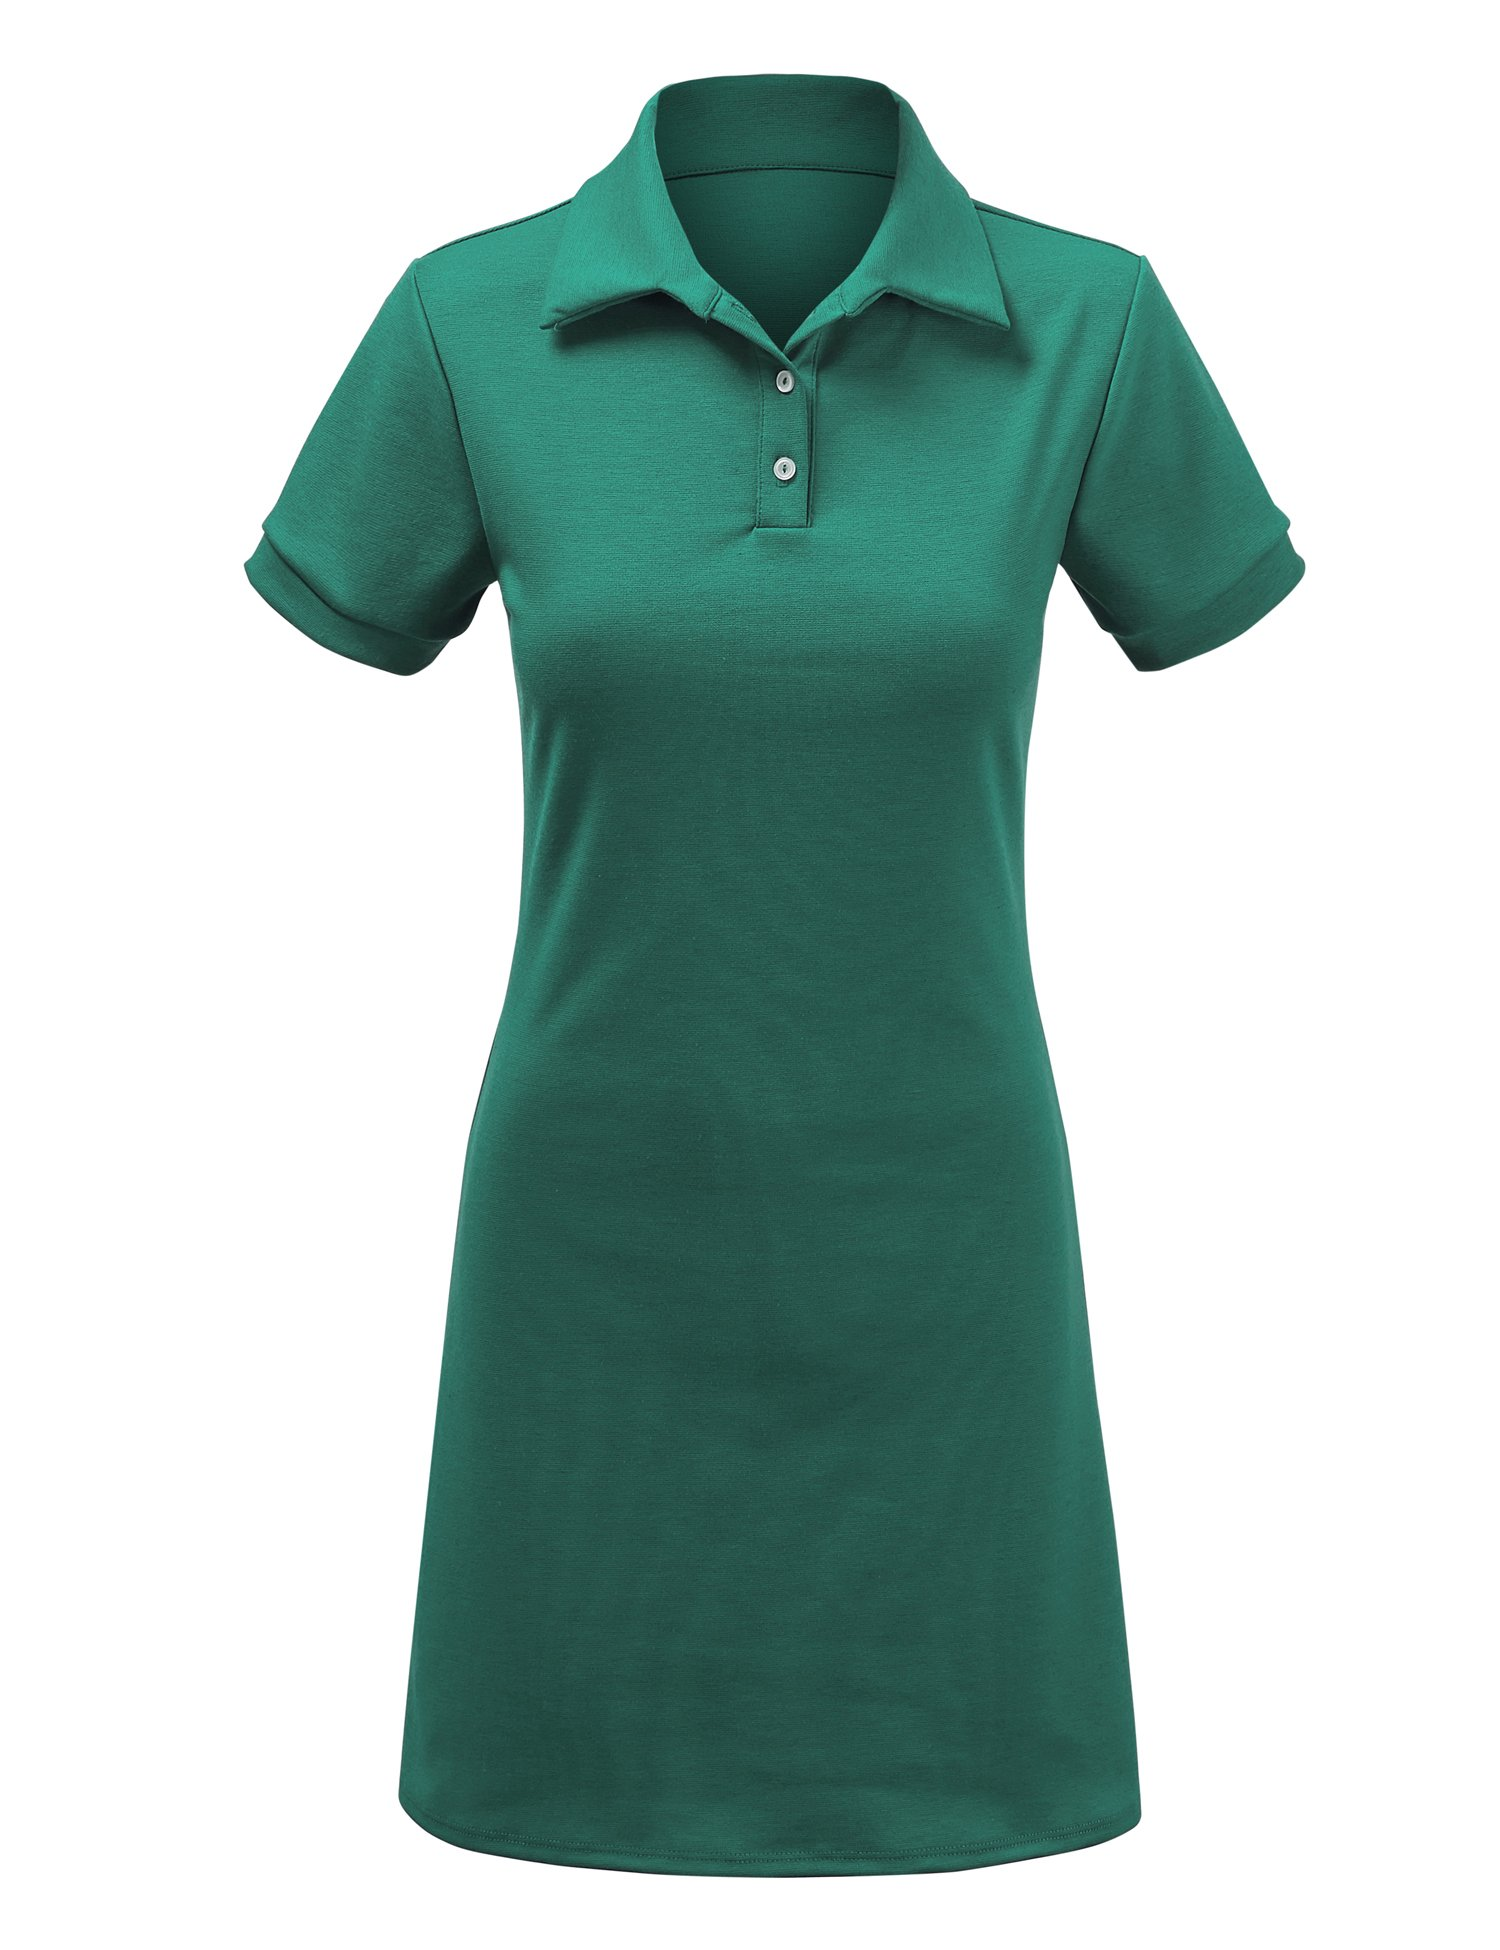 Come Together California WDR1379 Womens Short Sleeve Polo Dress - Made in USA L Jade